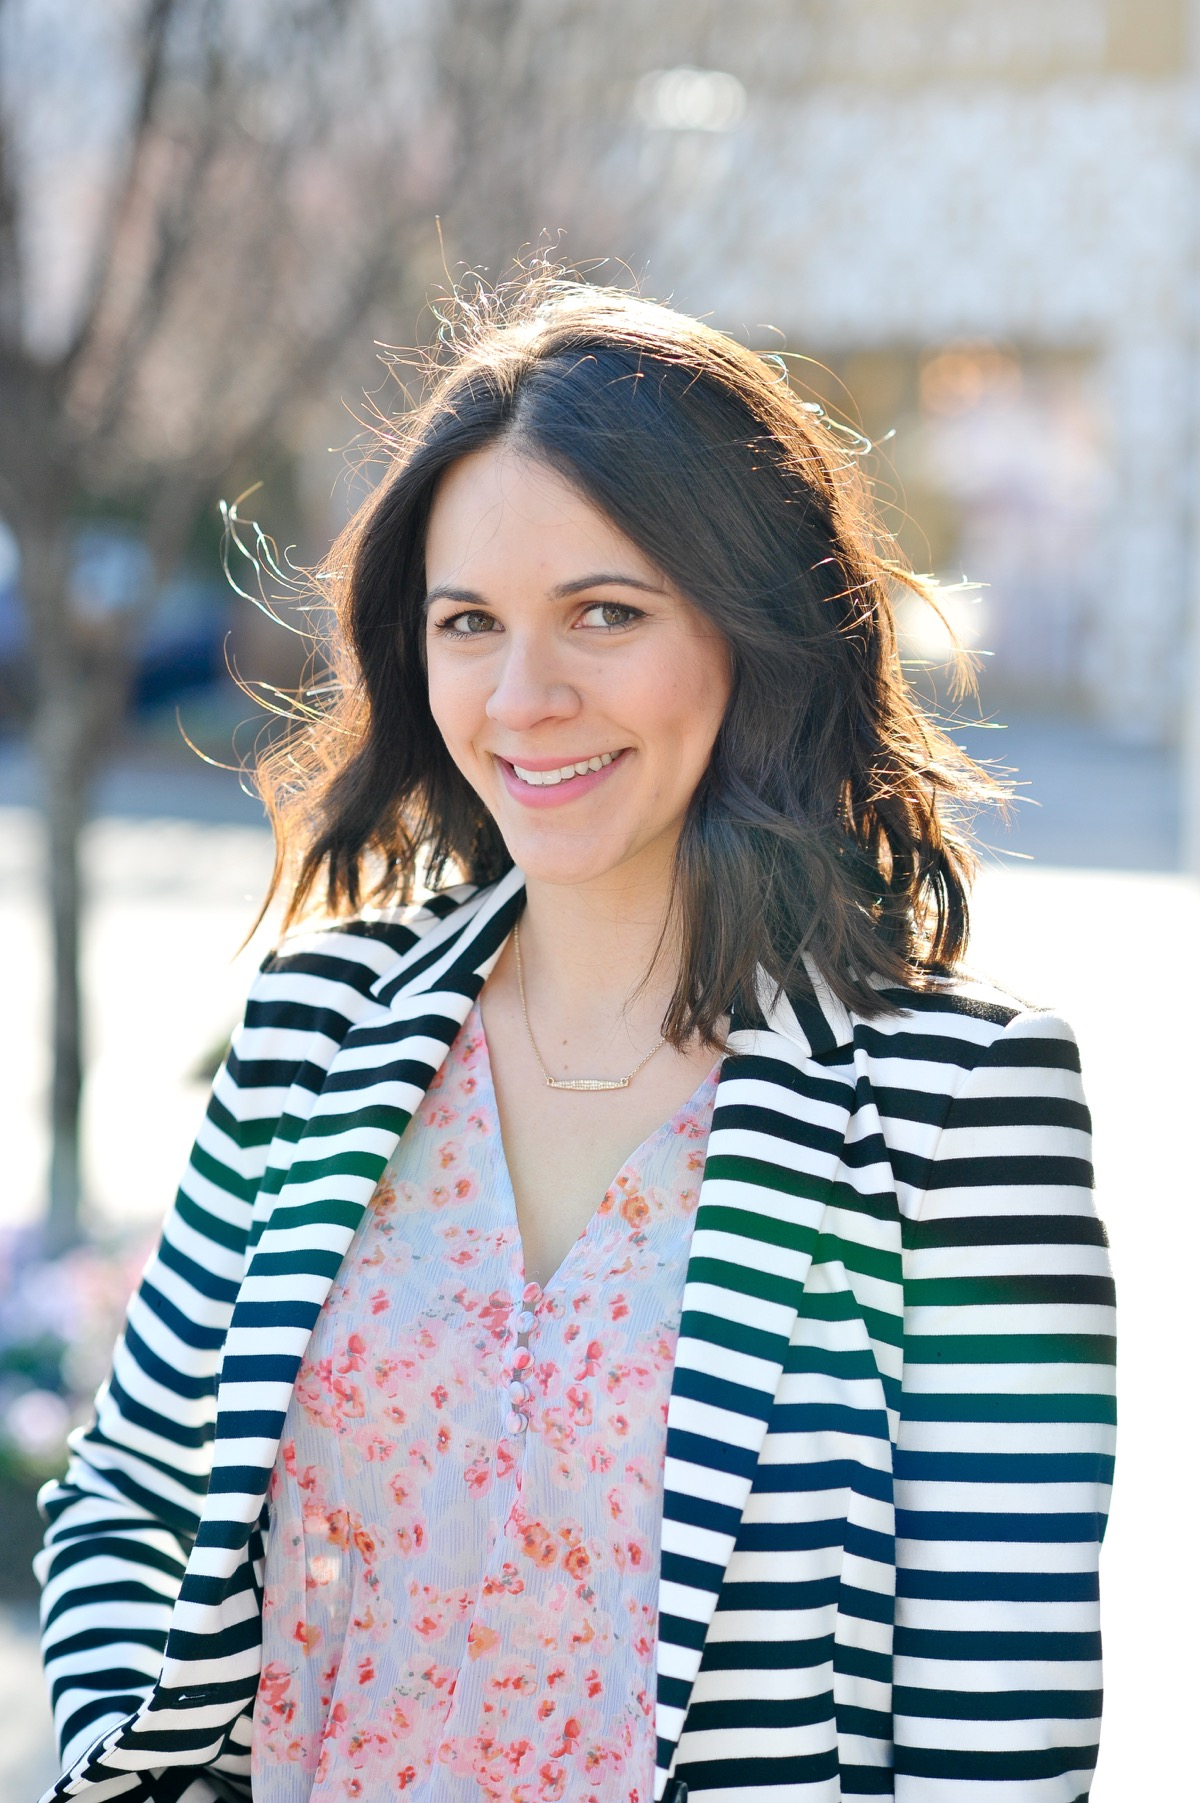 Ways to wear floral and stripes together, stripes and florals spring outfit ideas - @mystylevita